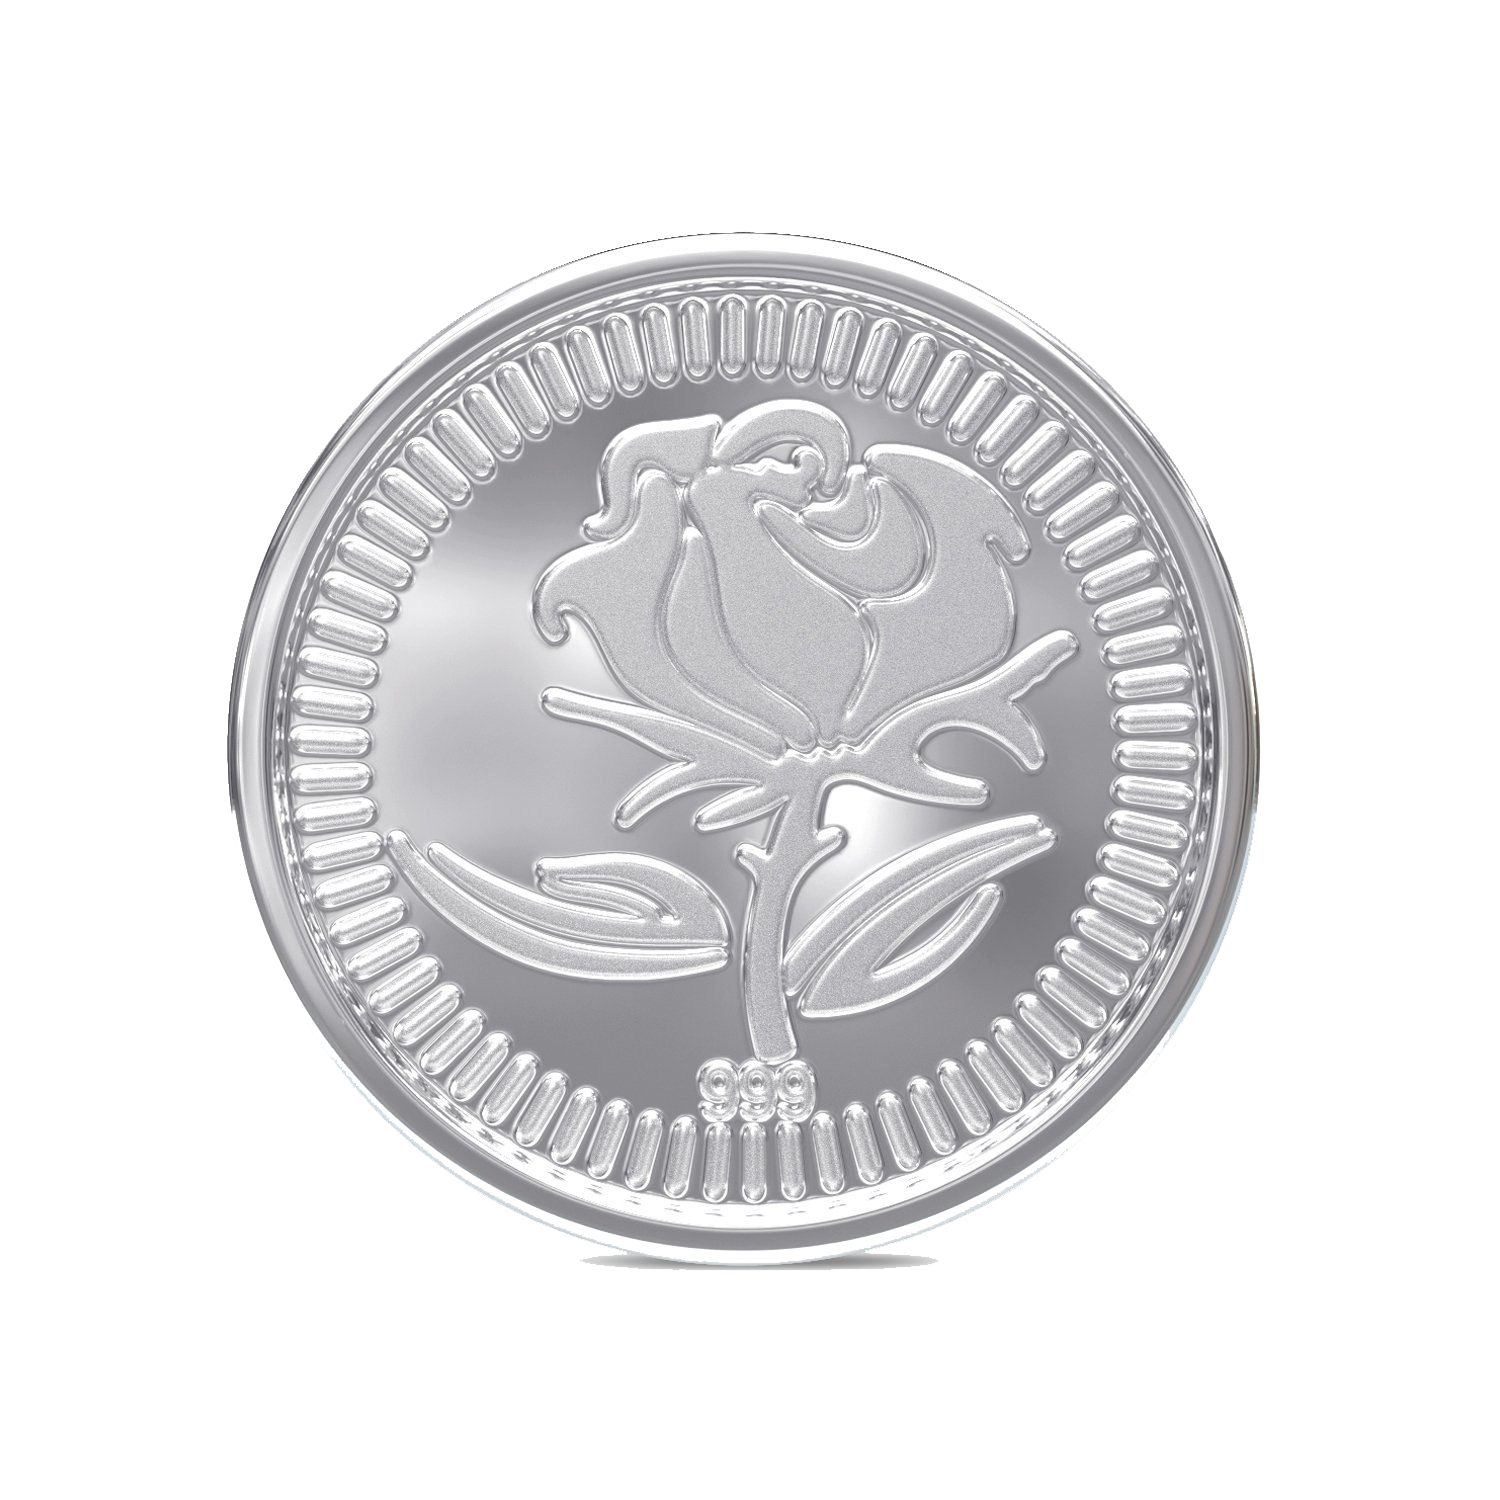 Silver Coin PNG Background.